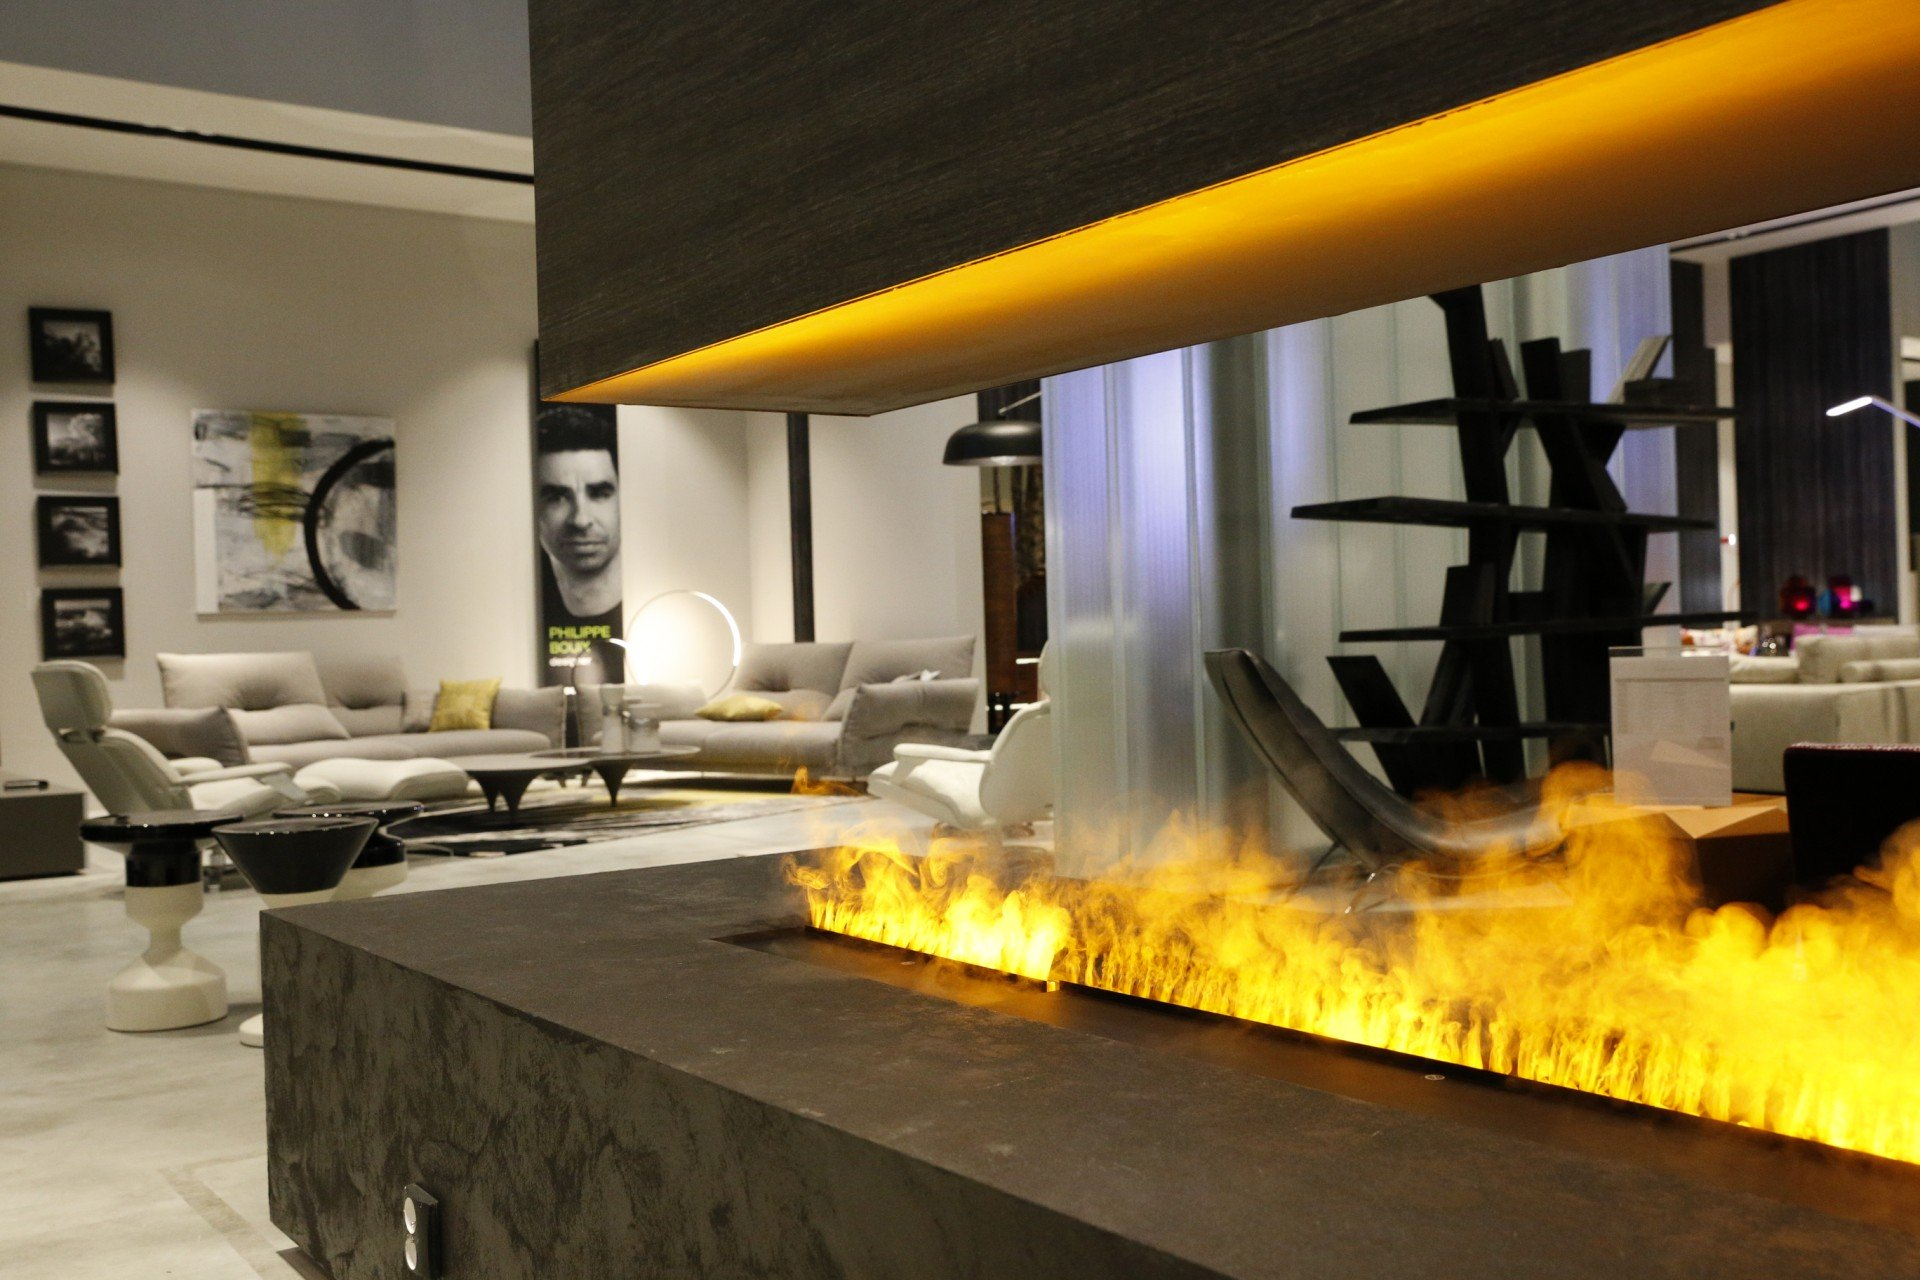 Glammfire presents at iSaloni Milano the magnificent illusion of false fire